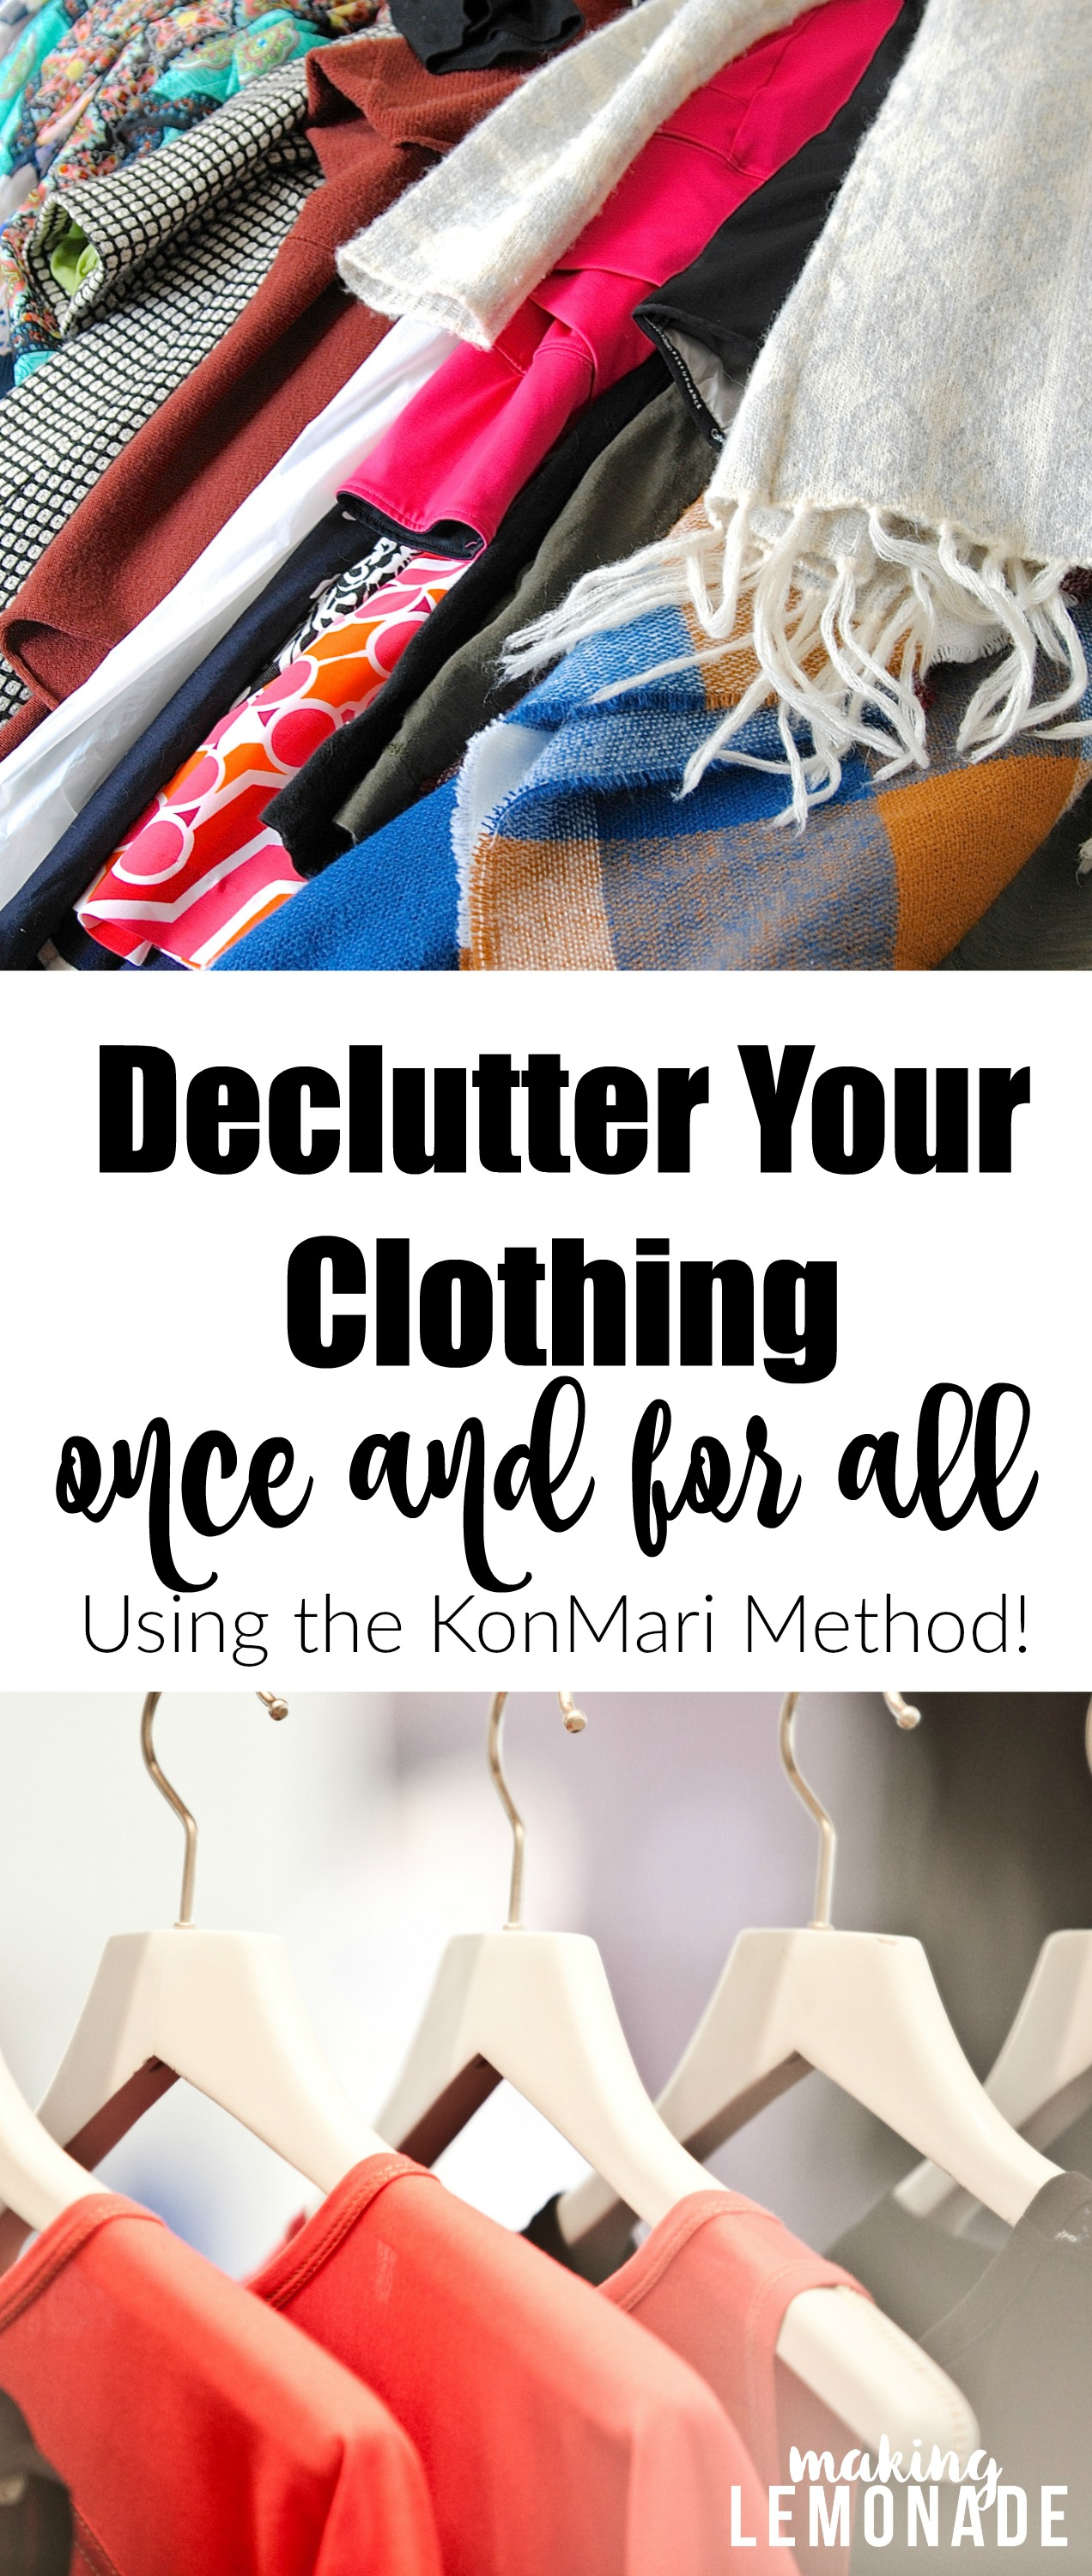 Step By Step Eyeshadow Tutorial: 10 Steps To Declutter Your Clothing Once And For All (The